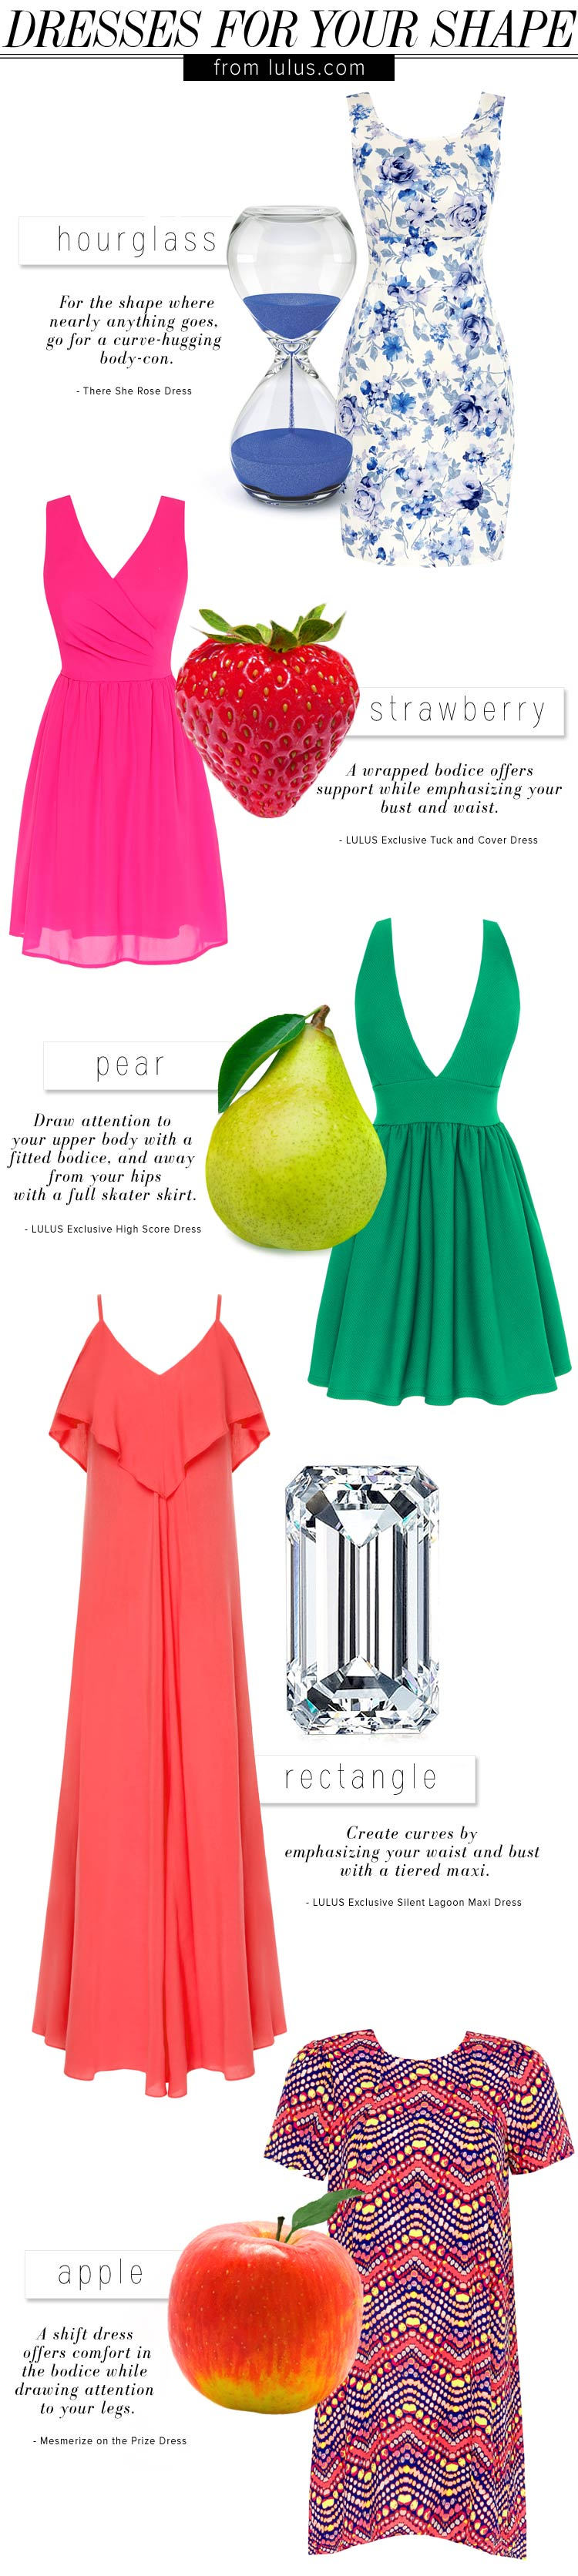 Dress For Your Shape